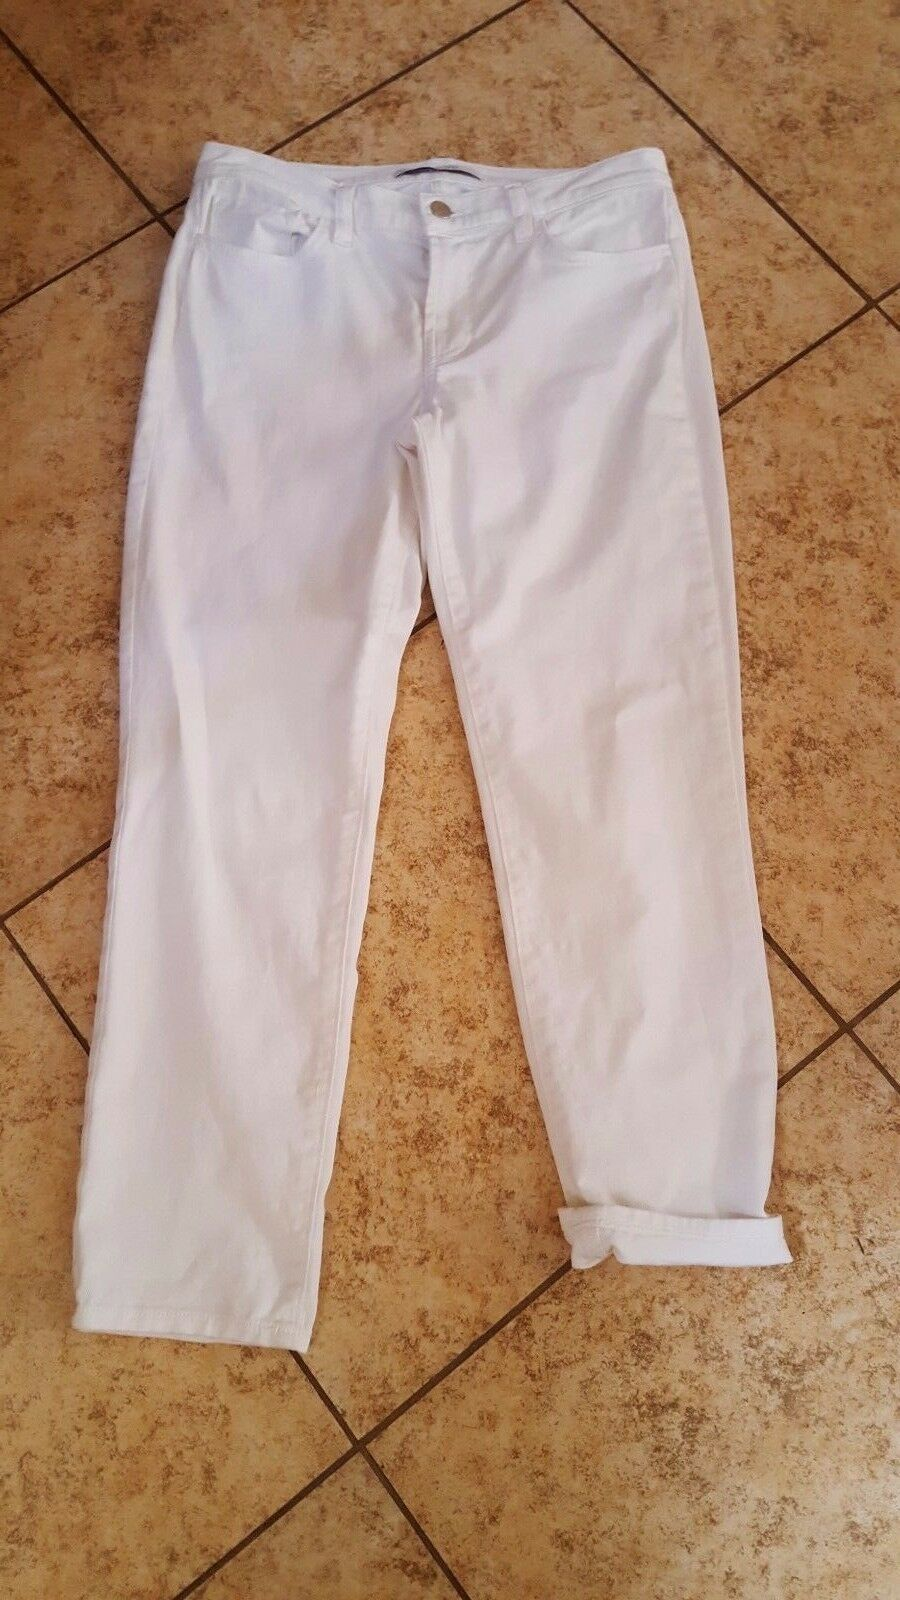 Primary image for  J Brand Jeans Women's Cropped  White Jeans sz 25 Denim  NICE!! #333